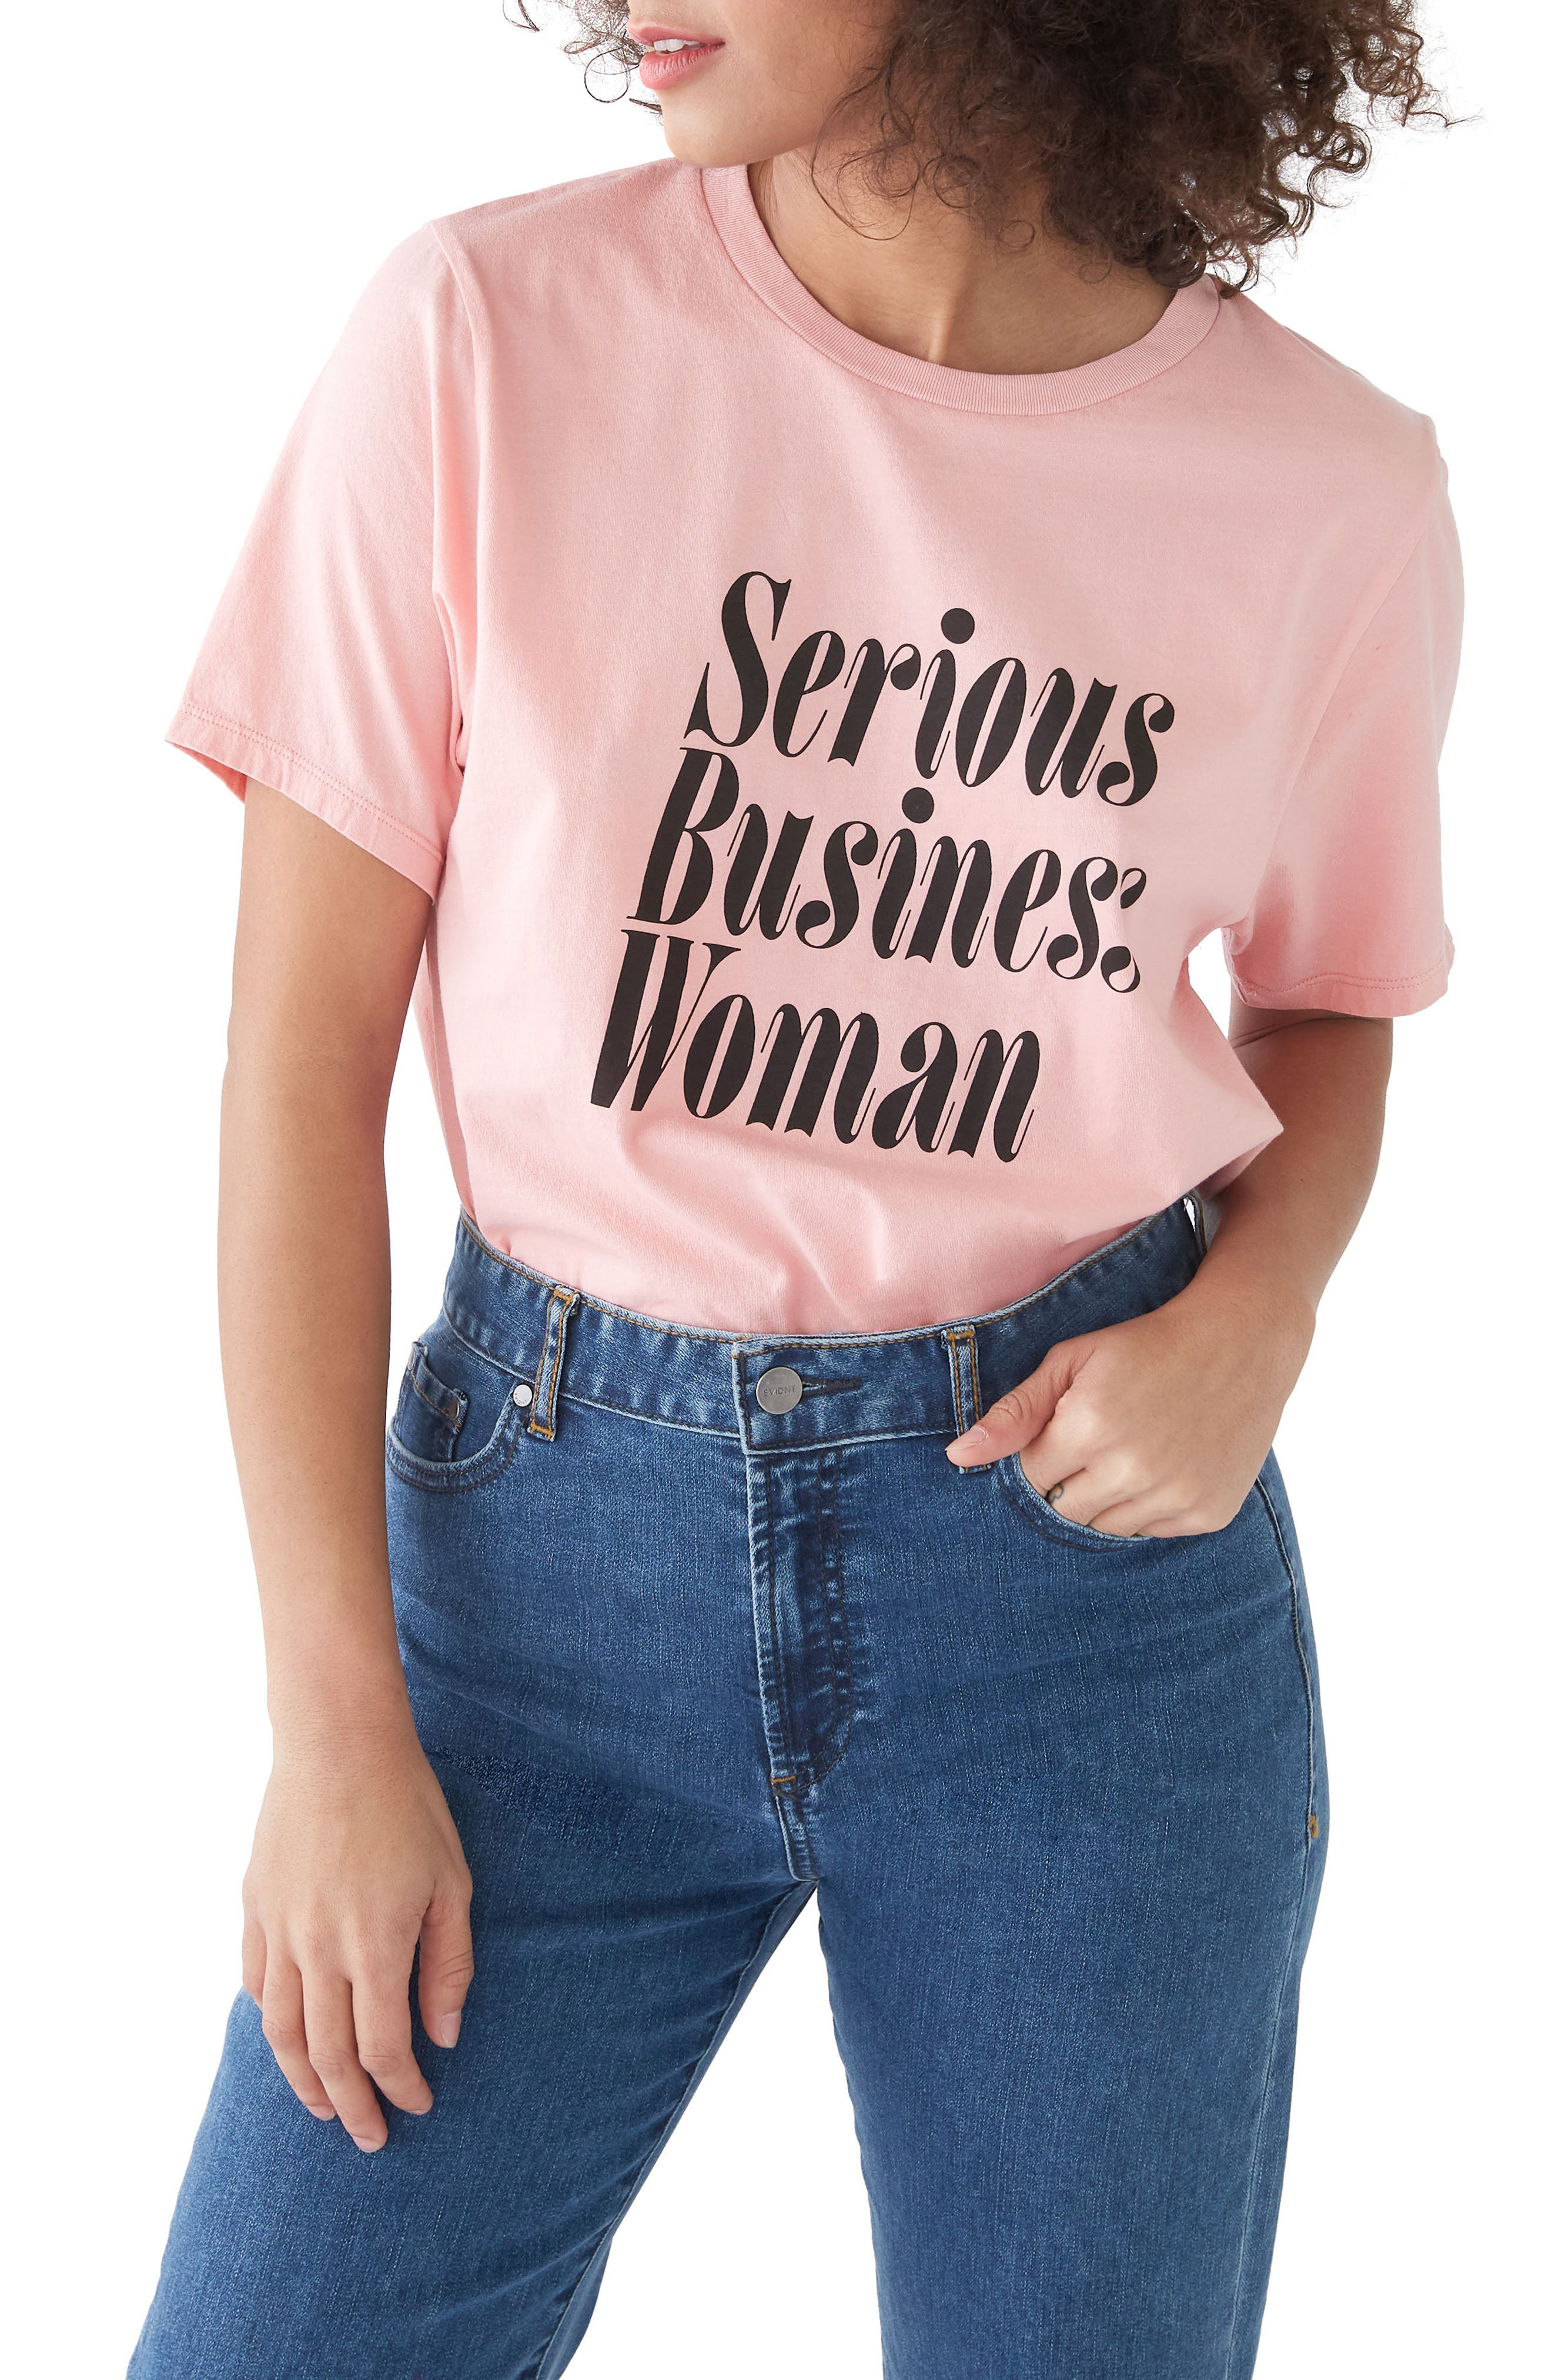 Serious Business Woman Classic Tee,                         Main,                         color, CAMEO PINK